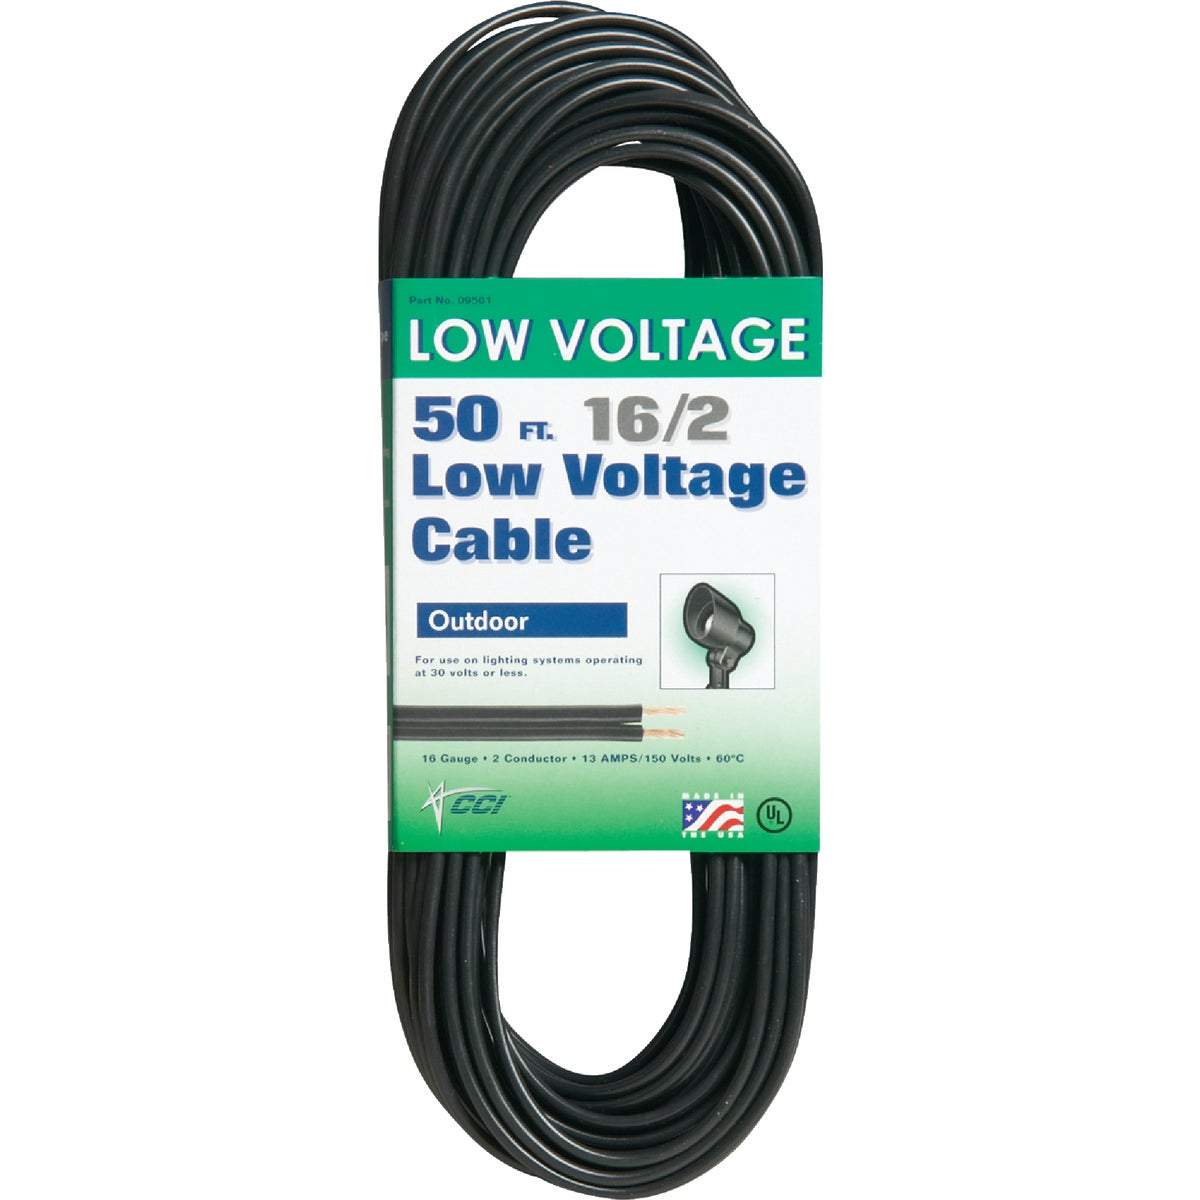 16/2 50' LOW VOLT CABLE - 09501-50-08 by Woods Wire Coleman